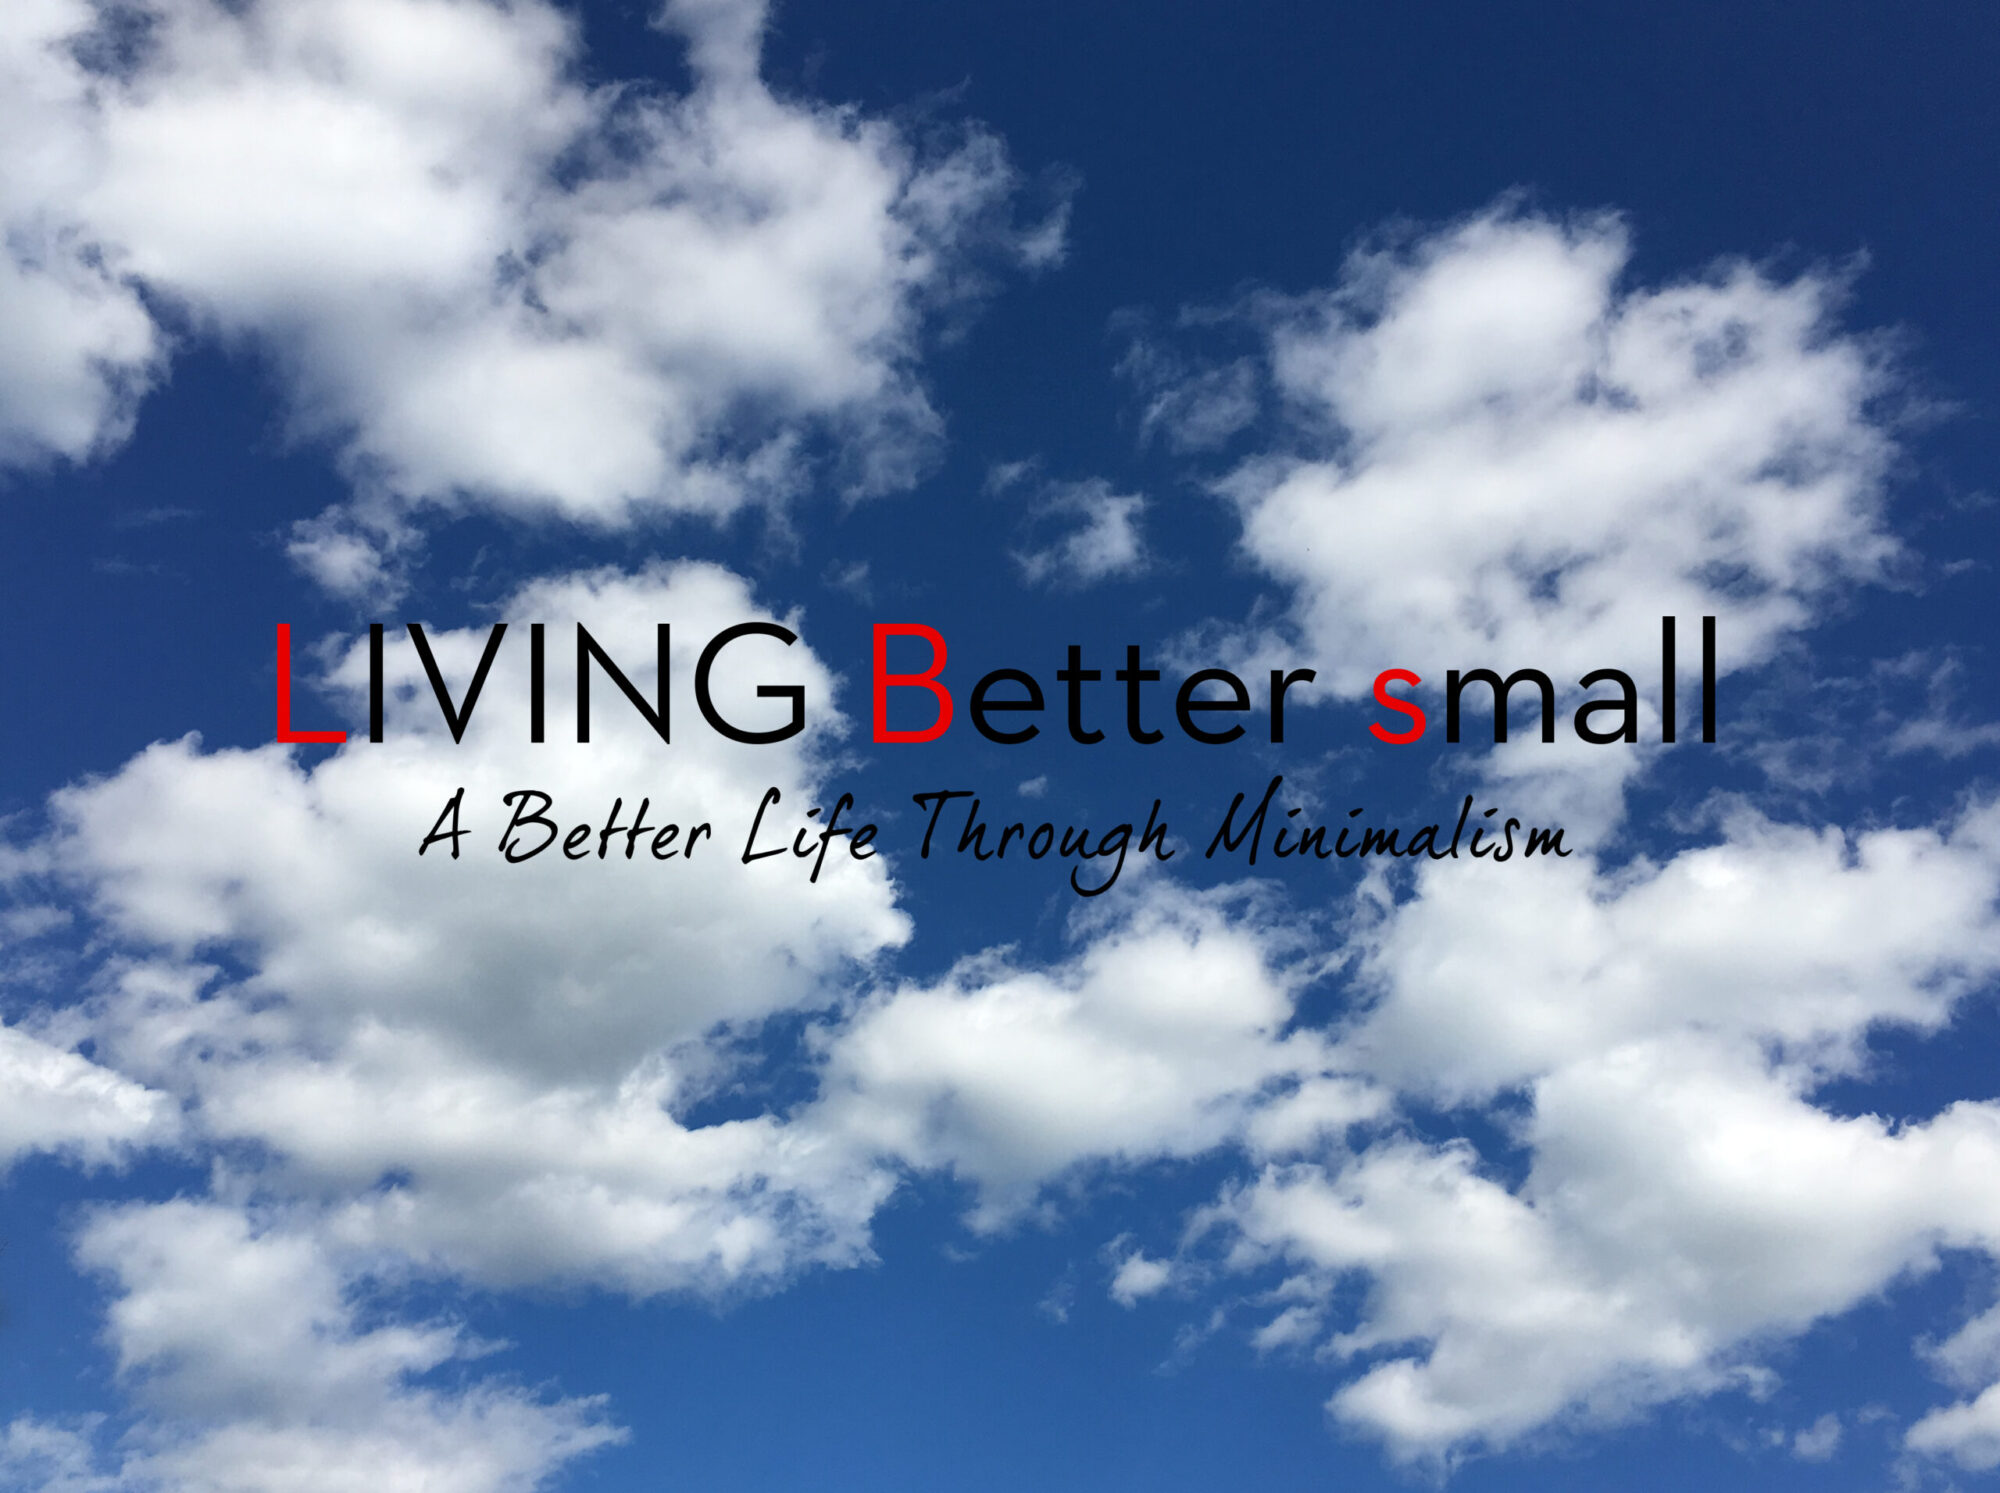 Living Better Small